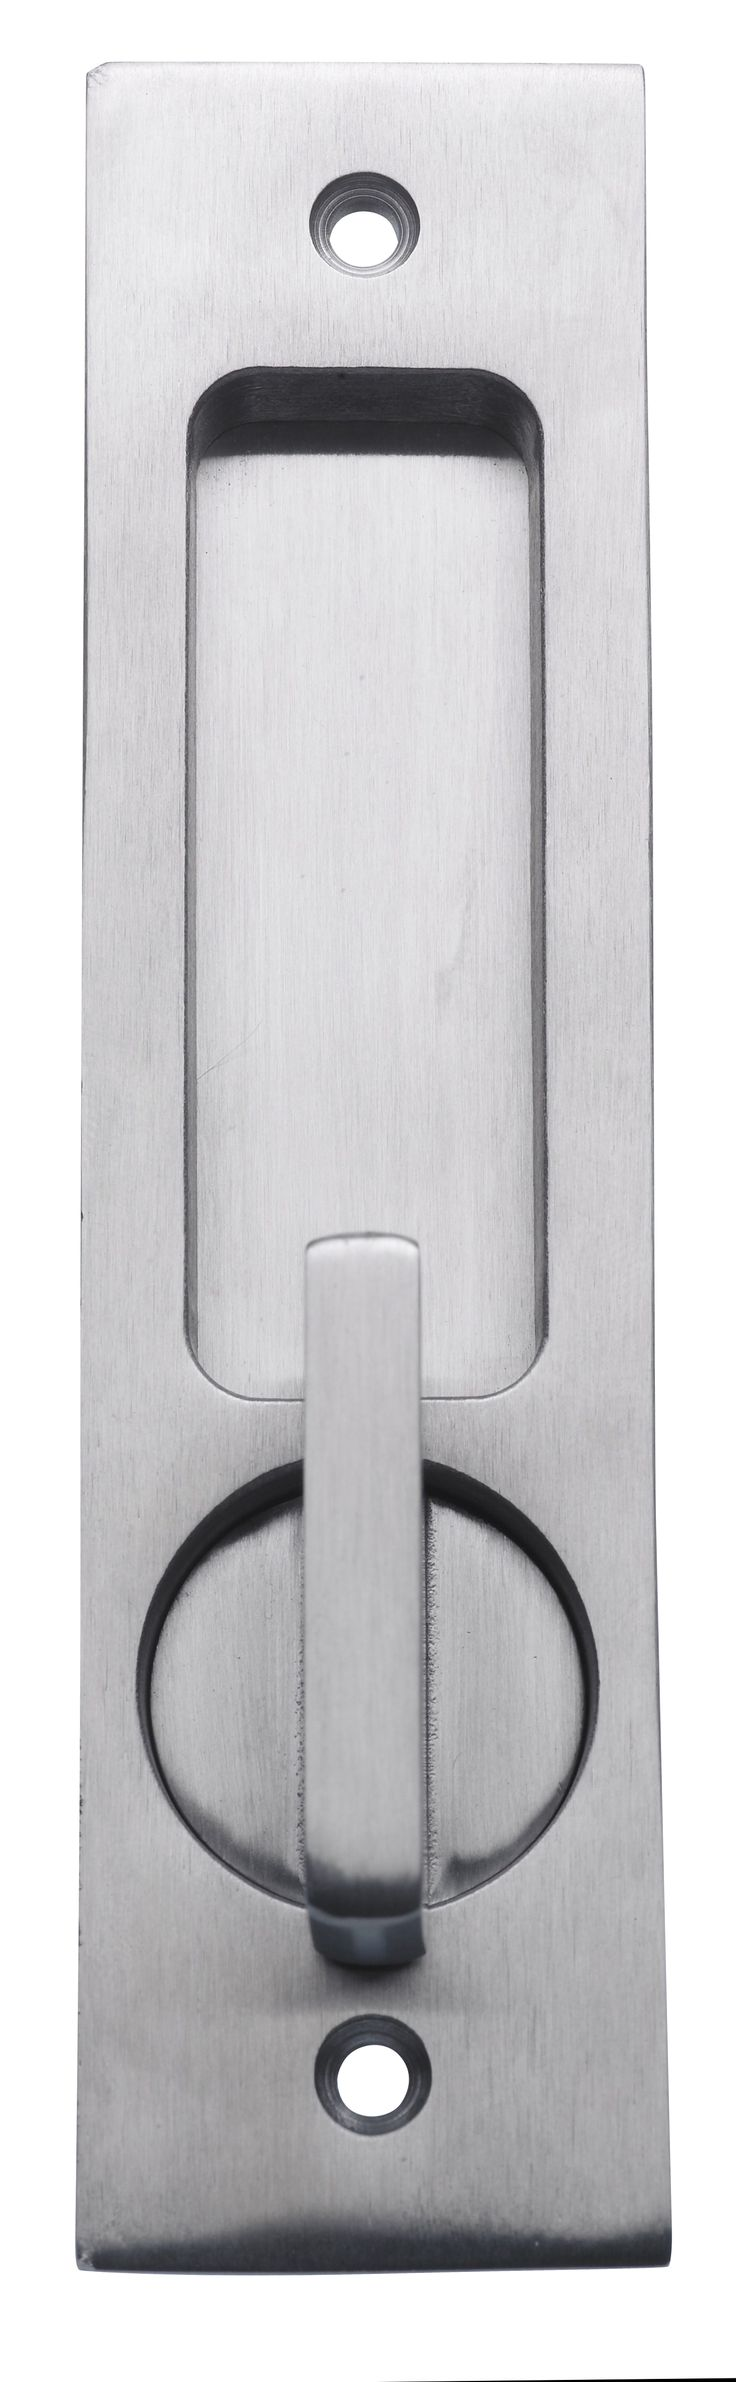 Pocket door bathroom lock - Linnea Pl 160r Round Privacy Pocket Door Lock